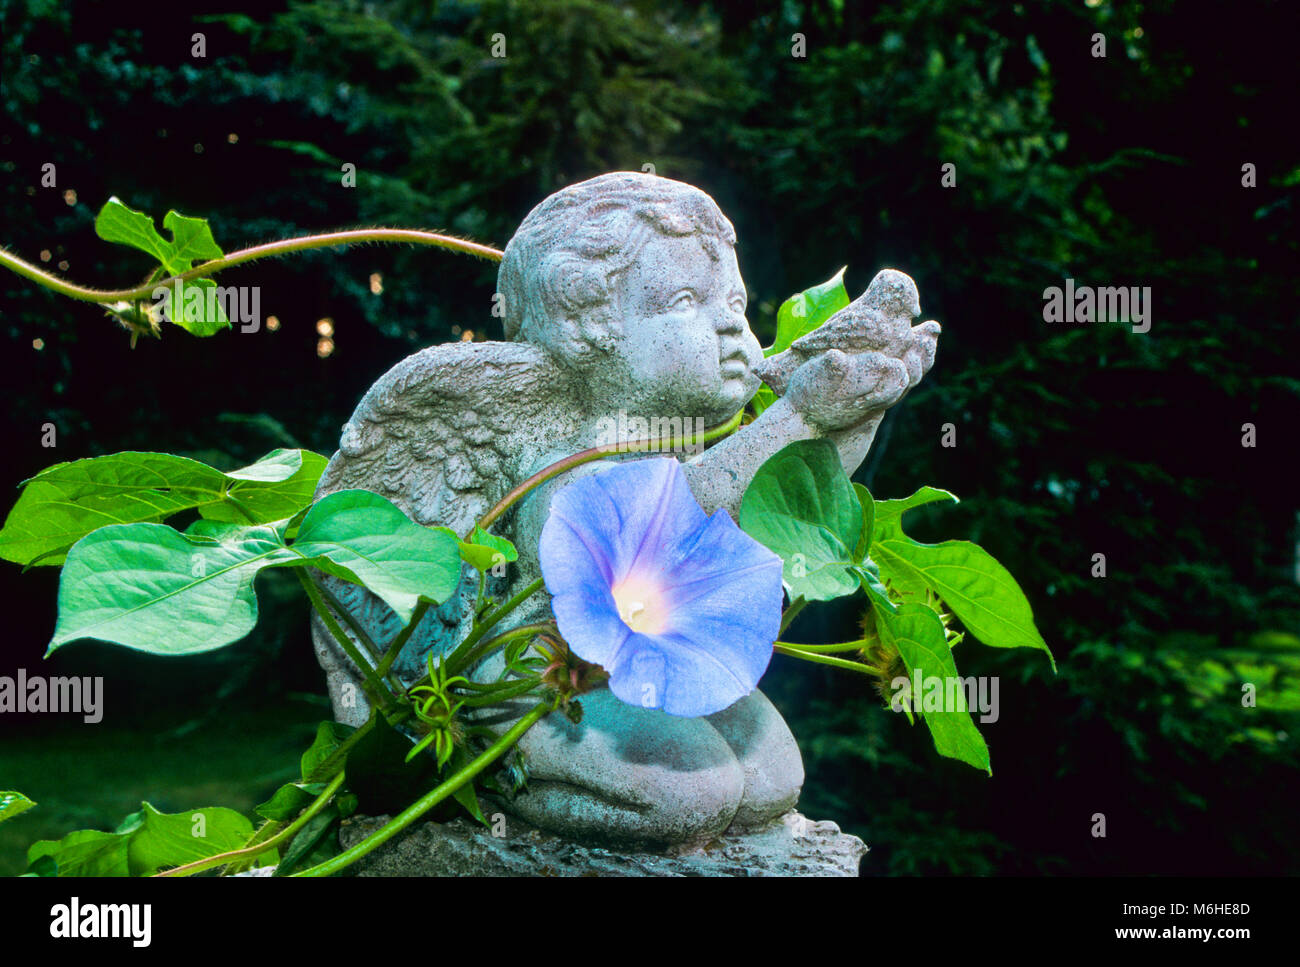 Angel garden figurine with a blue Morning Glory vine twining, New Jersey, USa - Stock Image